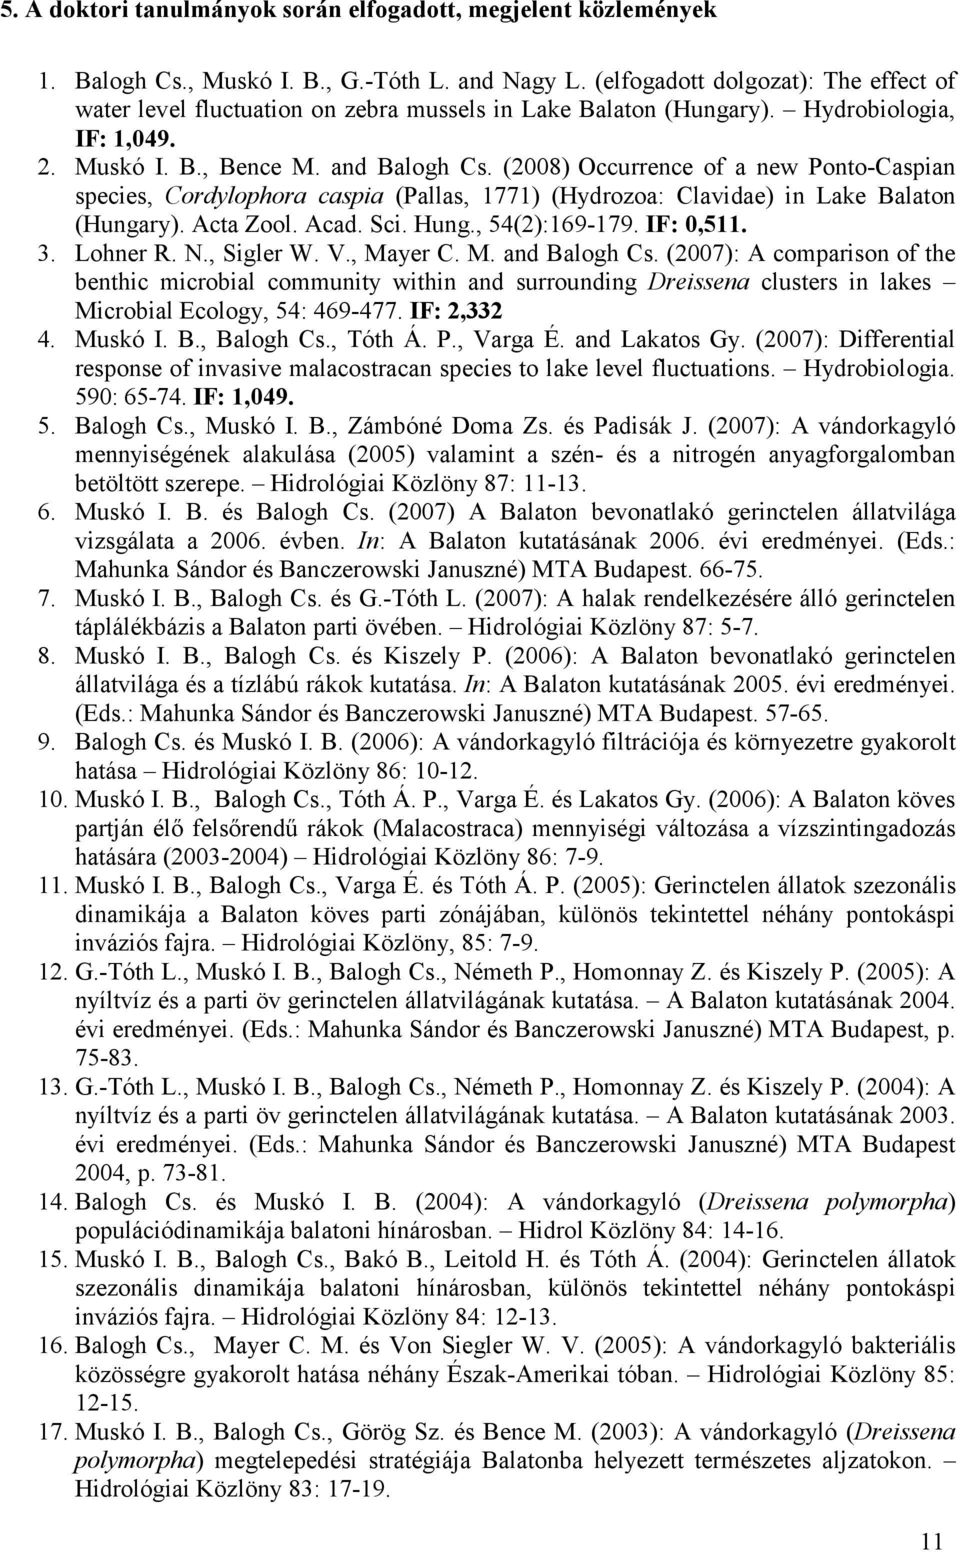 (2008) Occurrence of a new Ponto-Caspian species, Cordylophora caspia (Pallas, 1771) (Hydrozoa: Clavidae) in Lake Balaton (Hungary). Acta Zool. Acad. Sci. Hung., 54(2):169-179. IF: 0,511. 3. Lohner R.